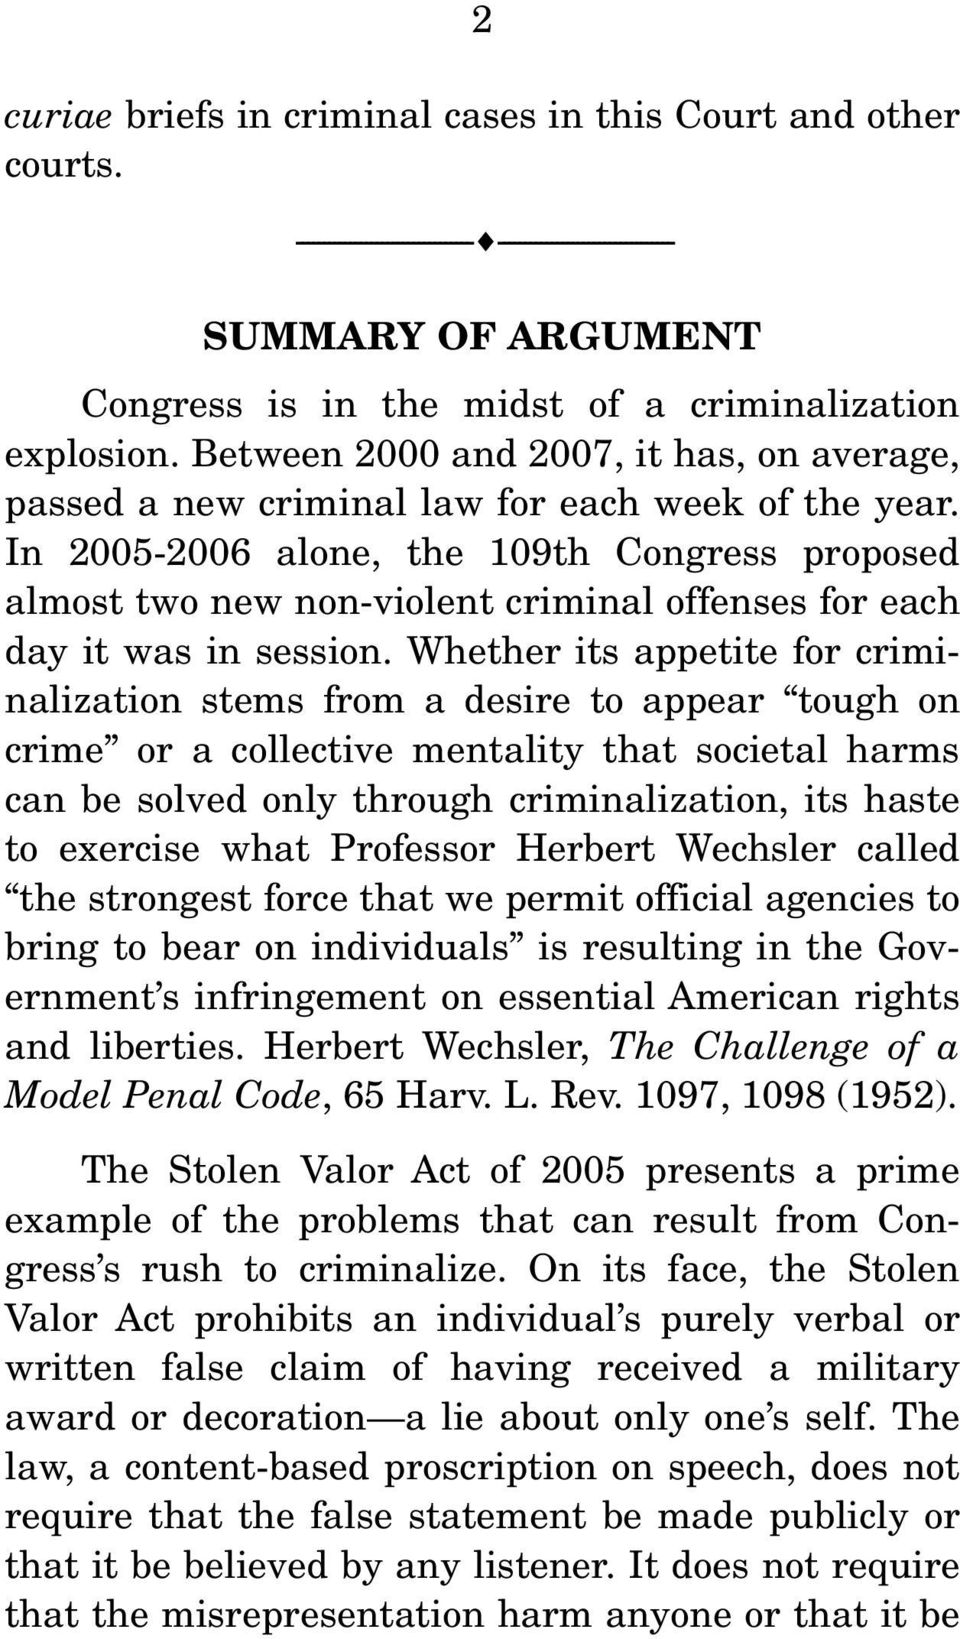 Between 2000 and 2007, it has, on average, passed a new criminal law for each week of the year.